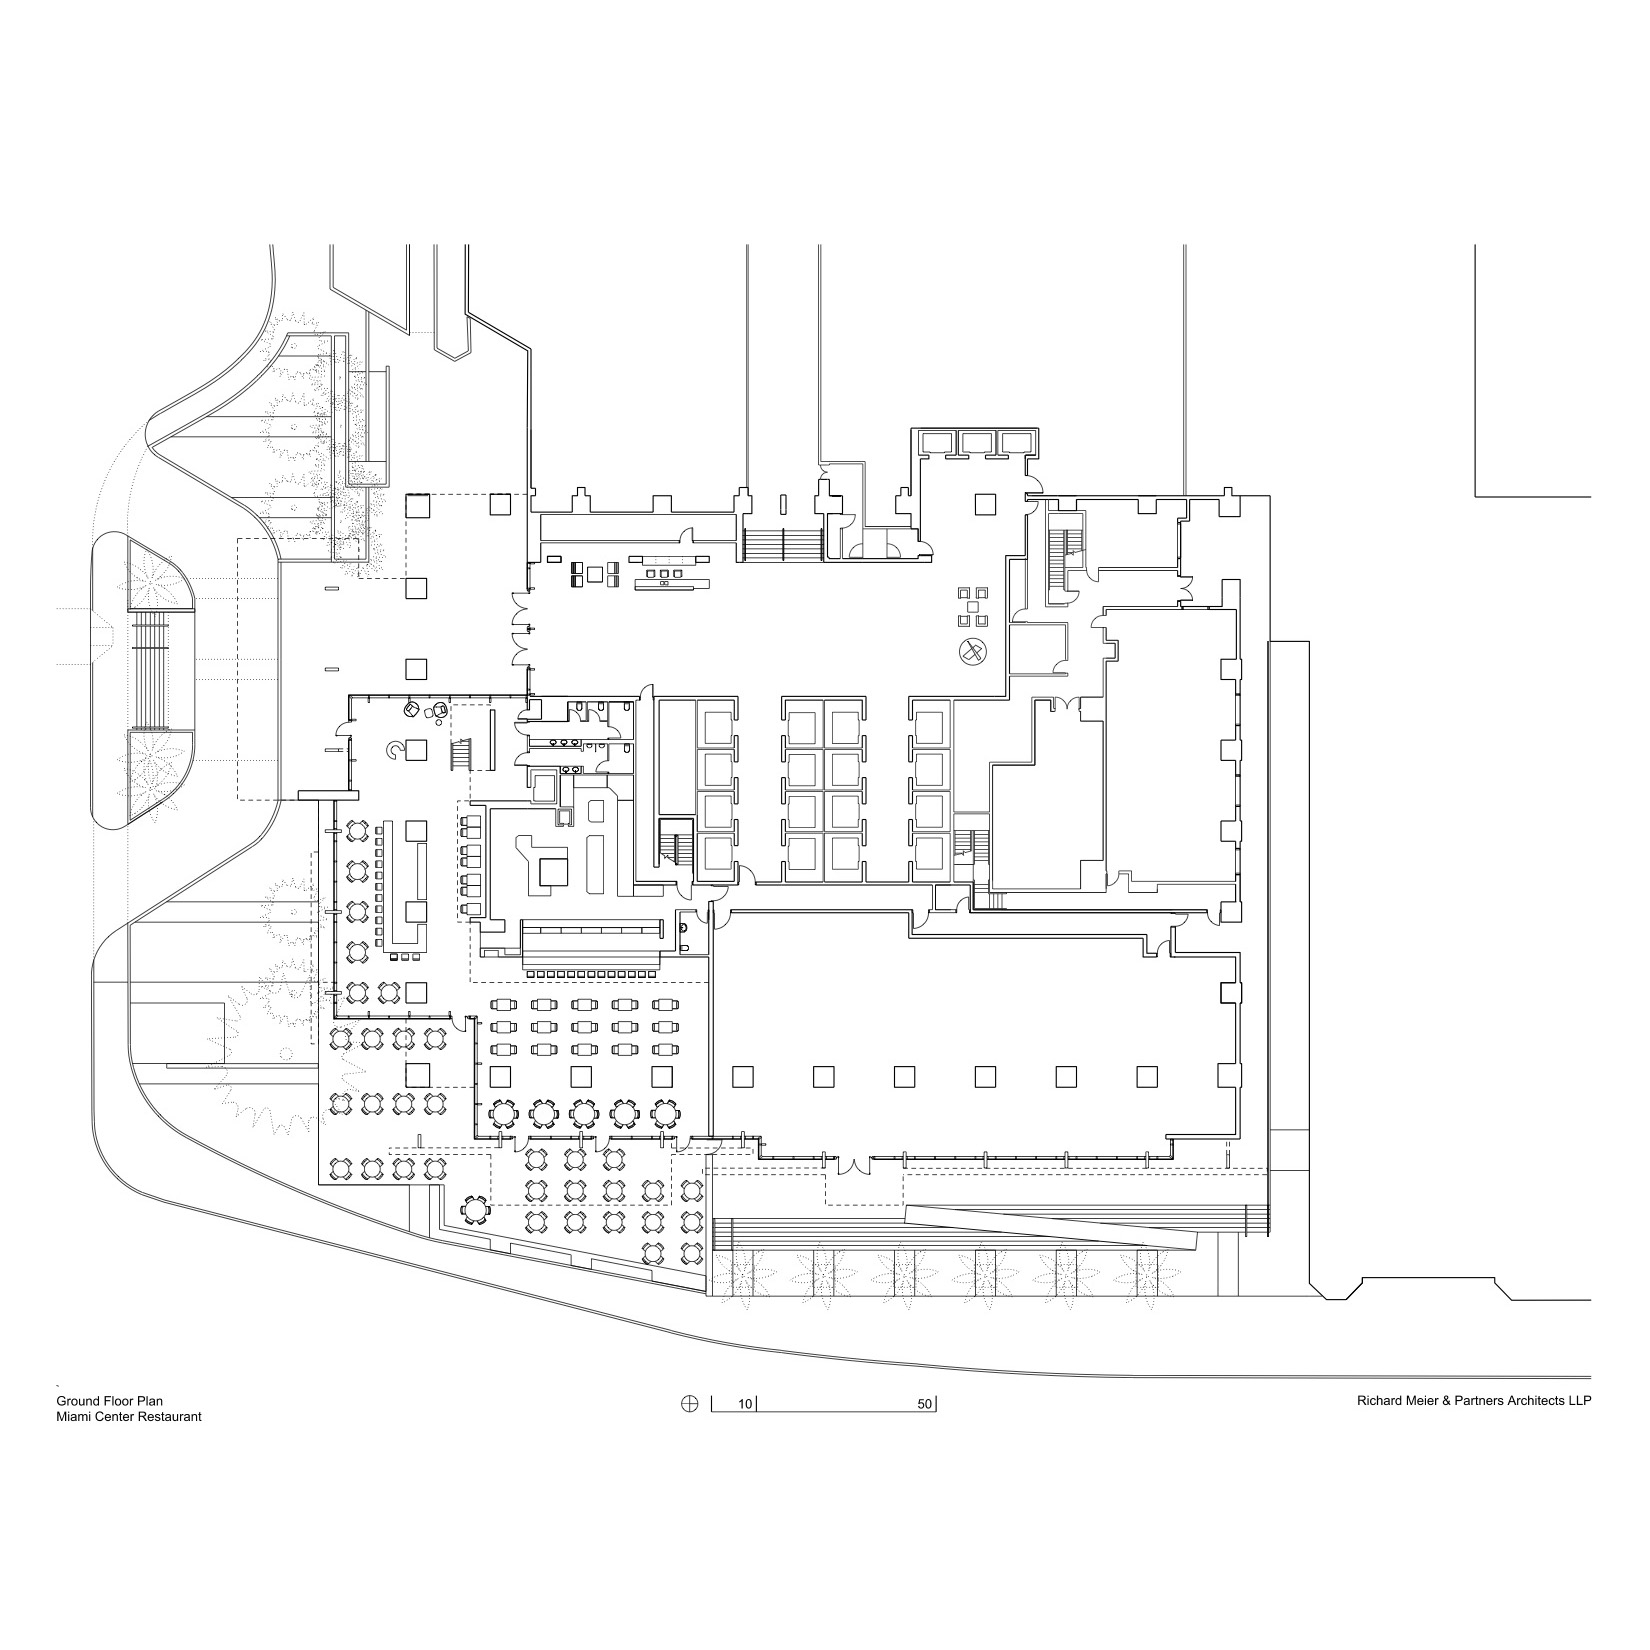 SQ_14020_MiamiCenter_Plan.jpg